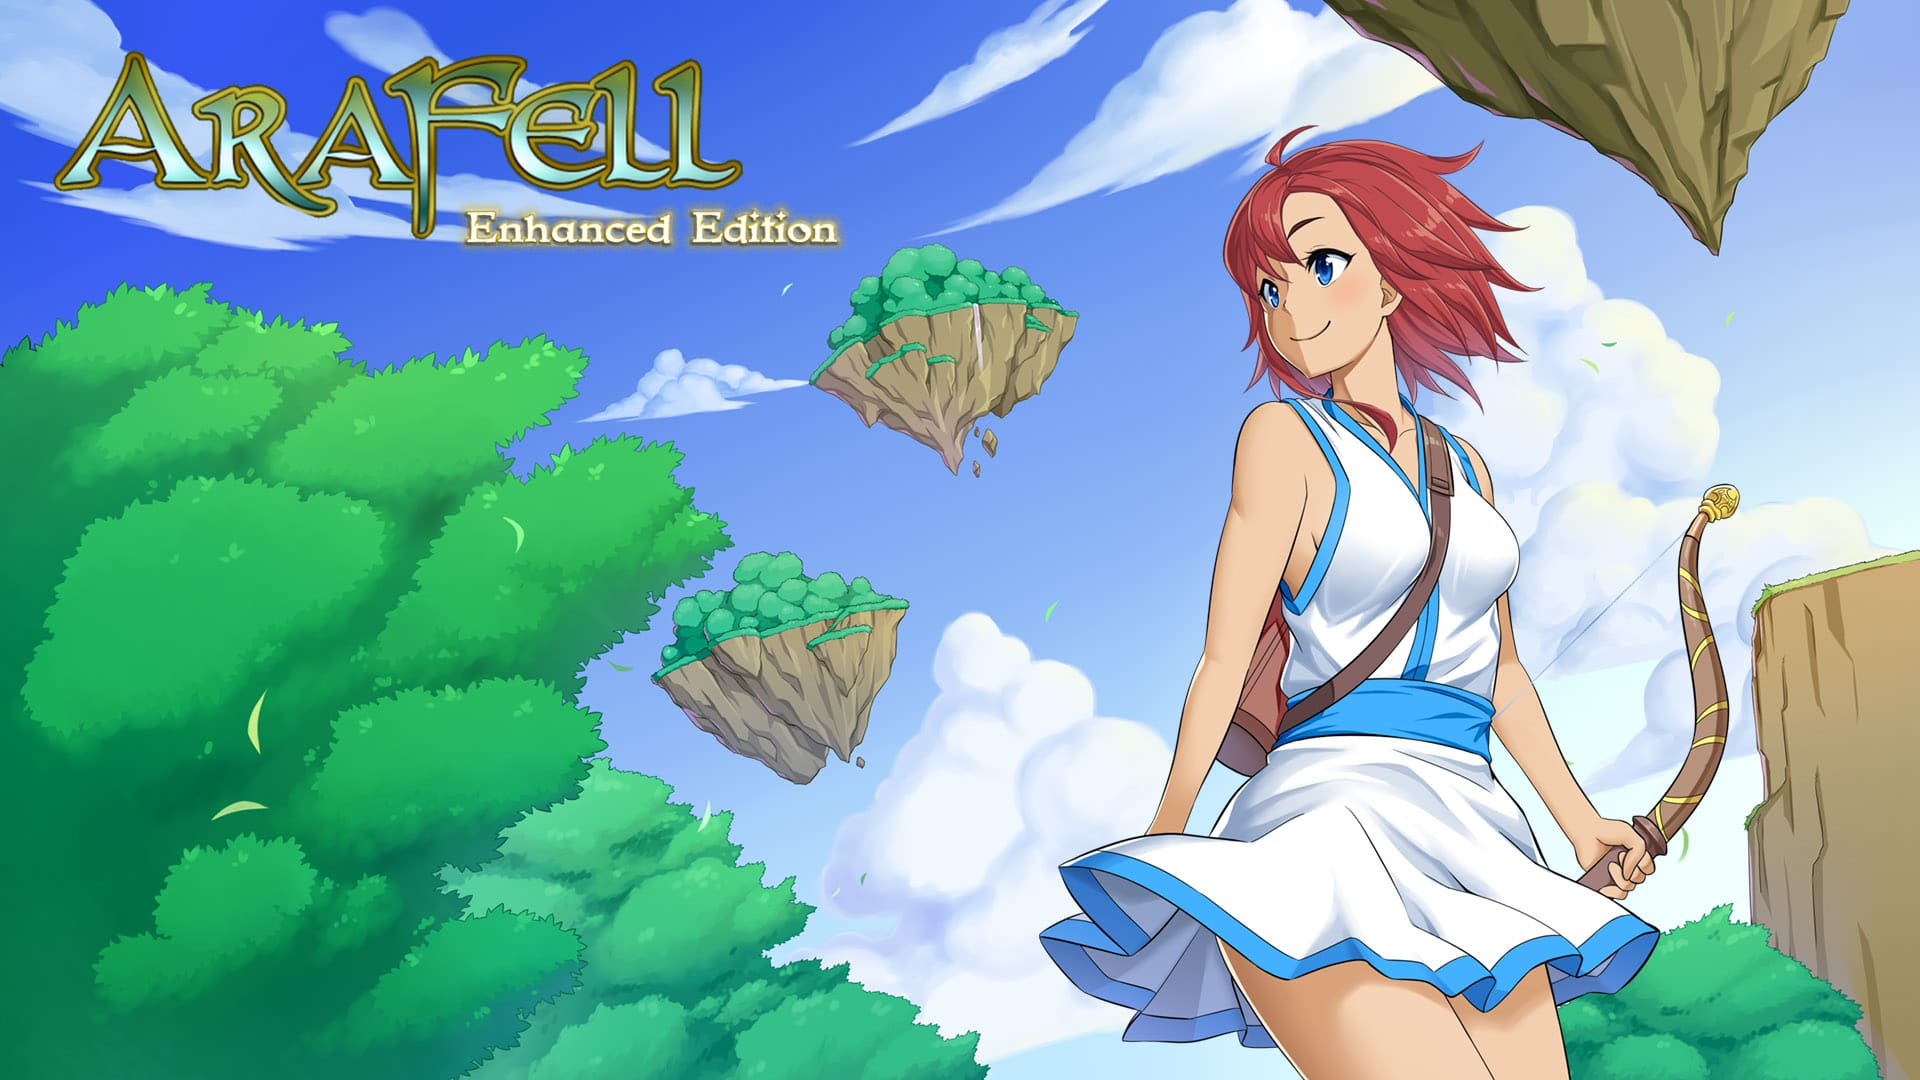 Ara Fell: Enhanced Edition (Video Game Review)